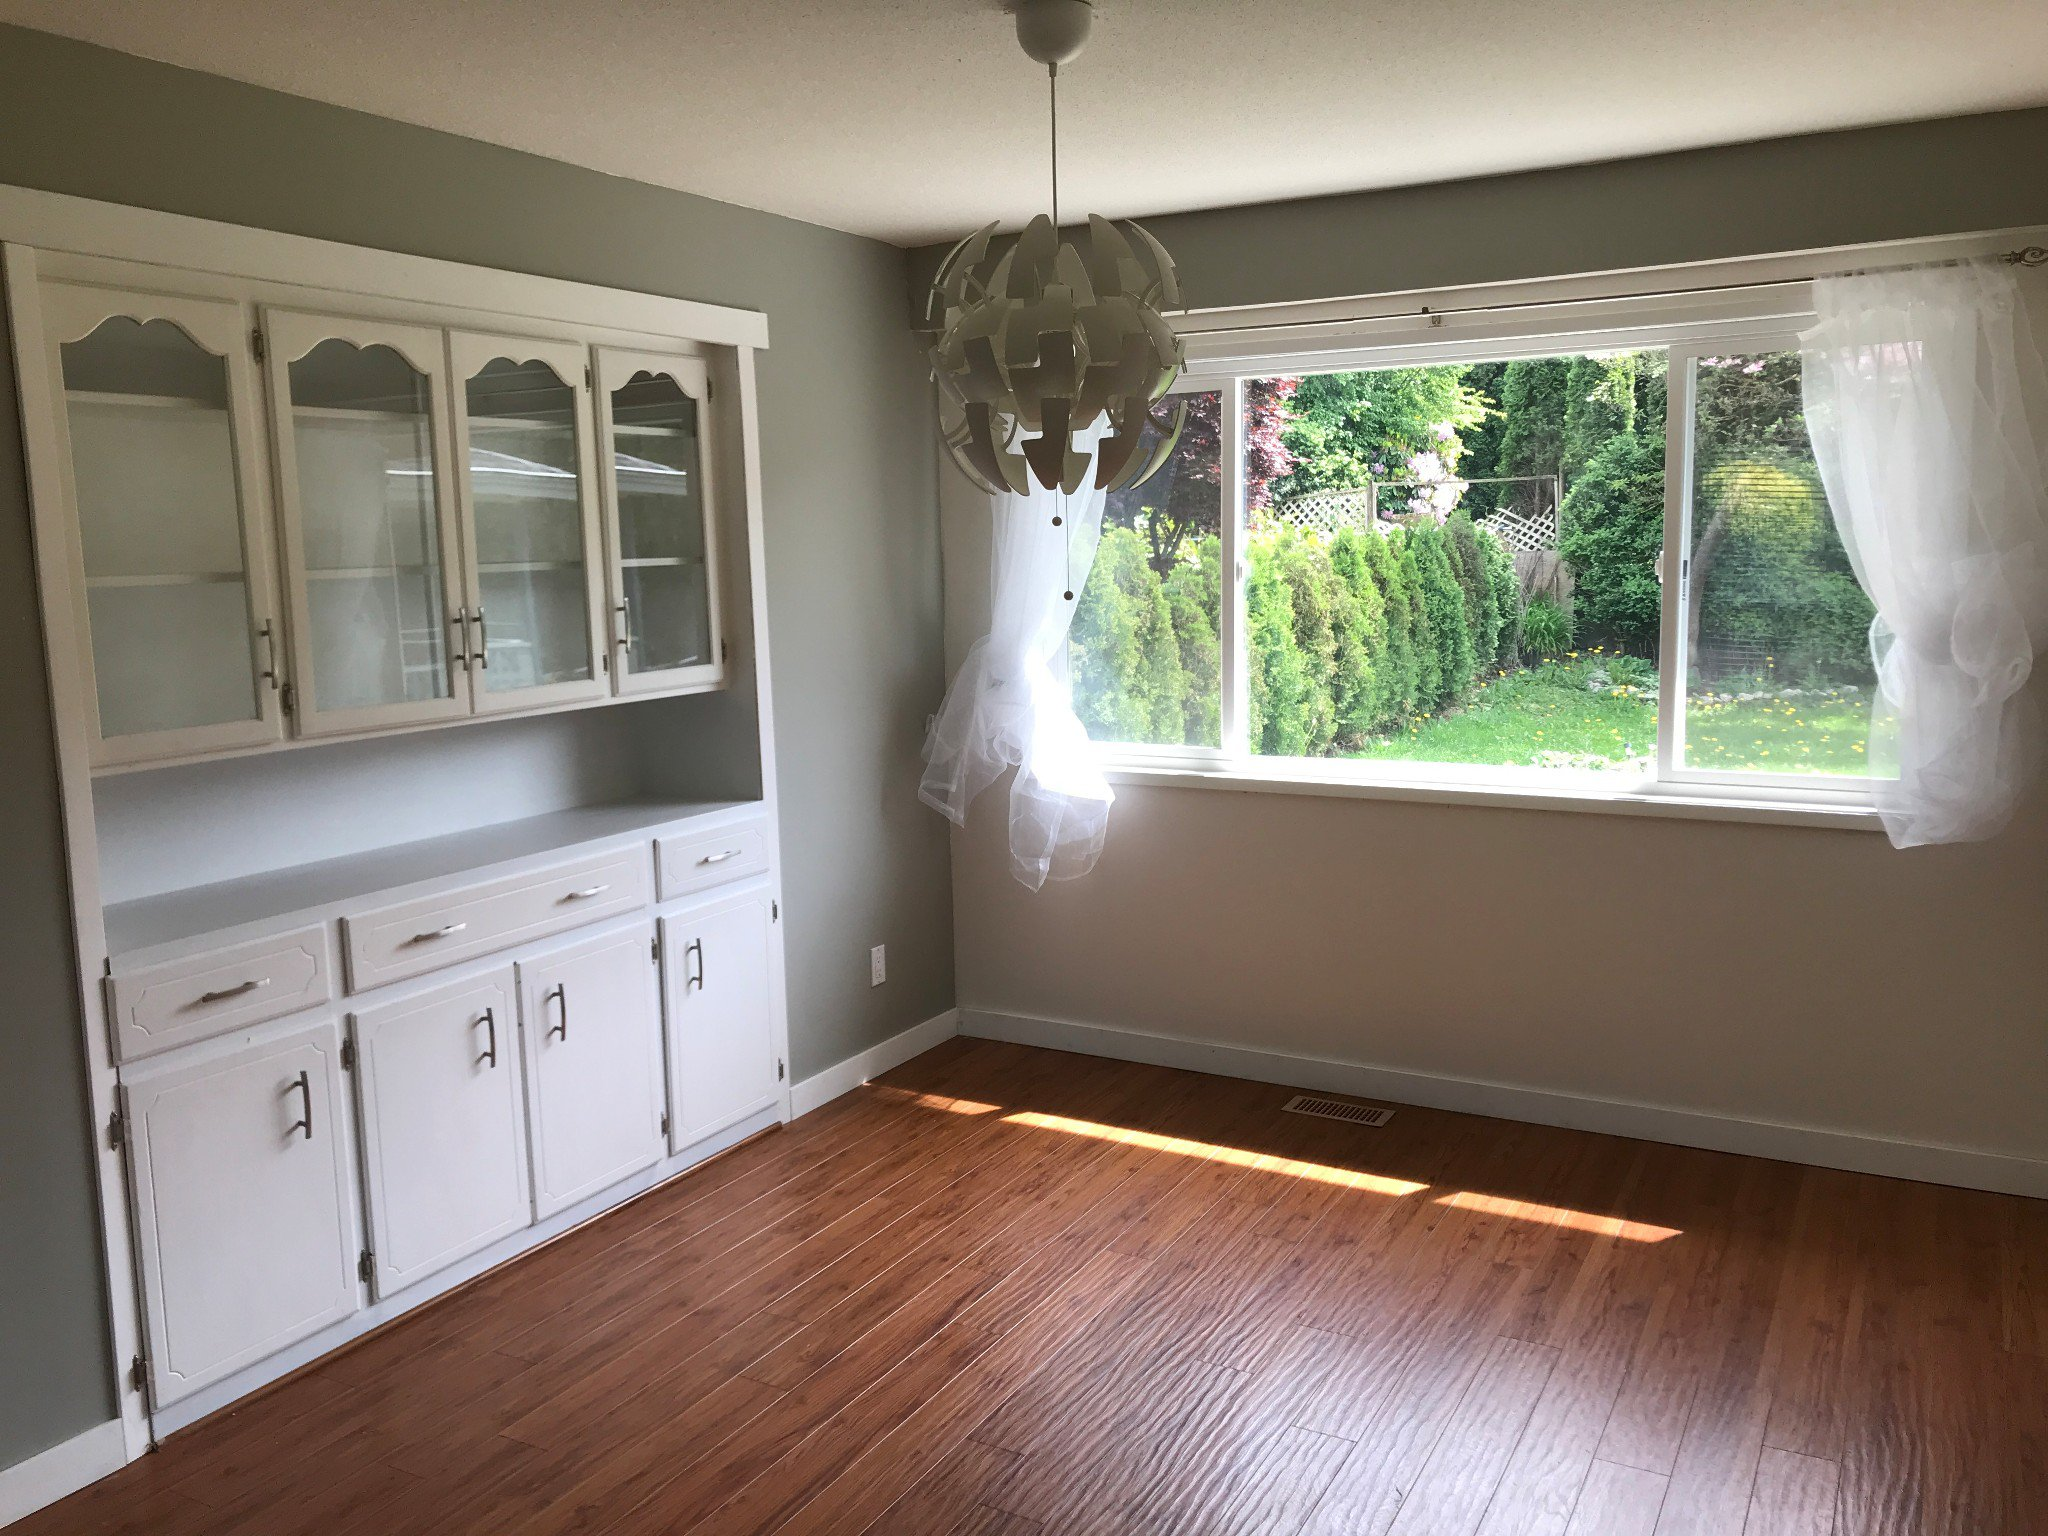 Photo 5: Photos: 2828 Arlington St. in Abbotsford: Central Abbotsford House for rent